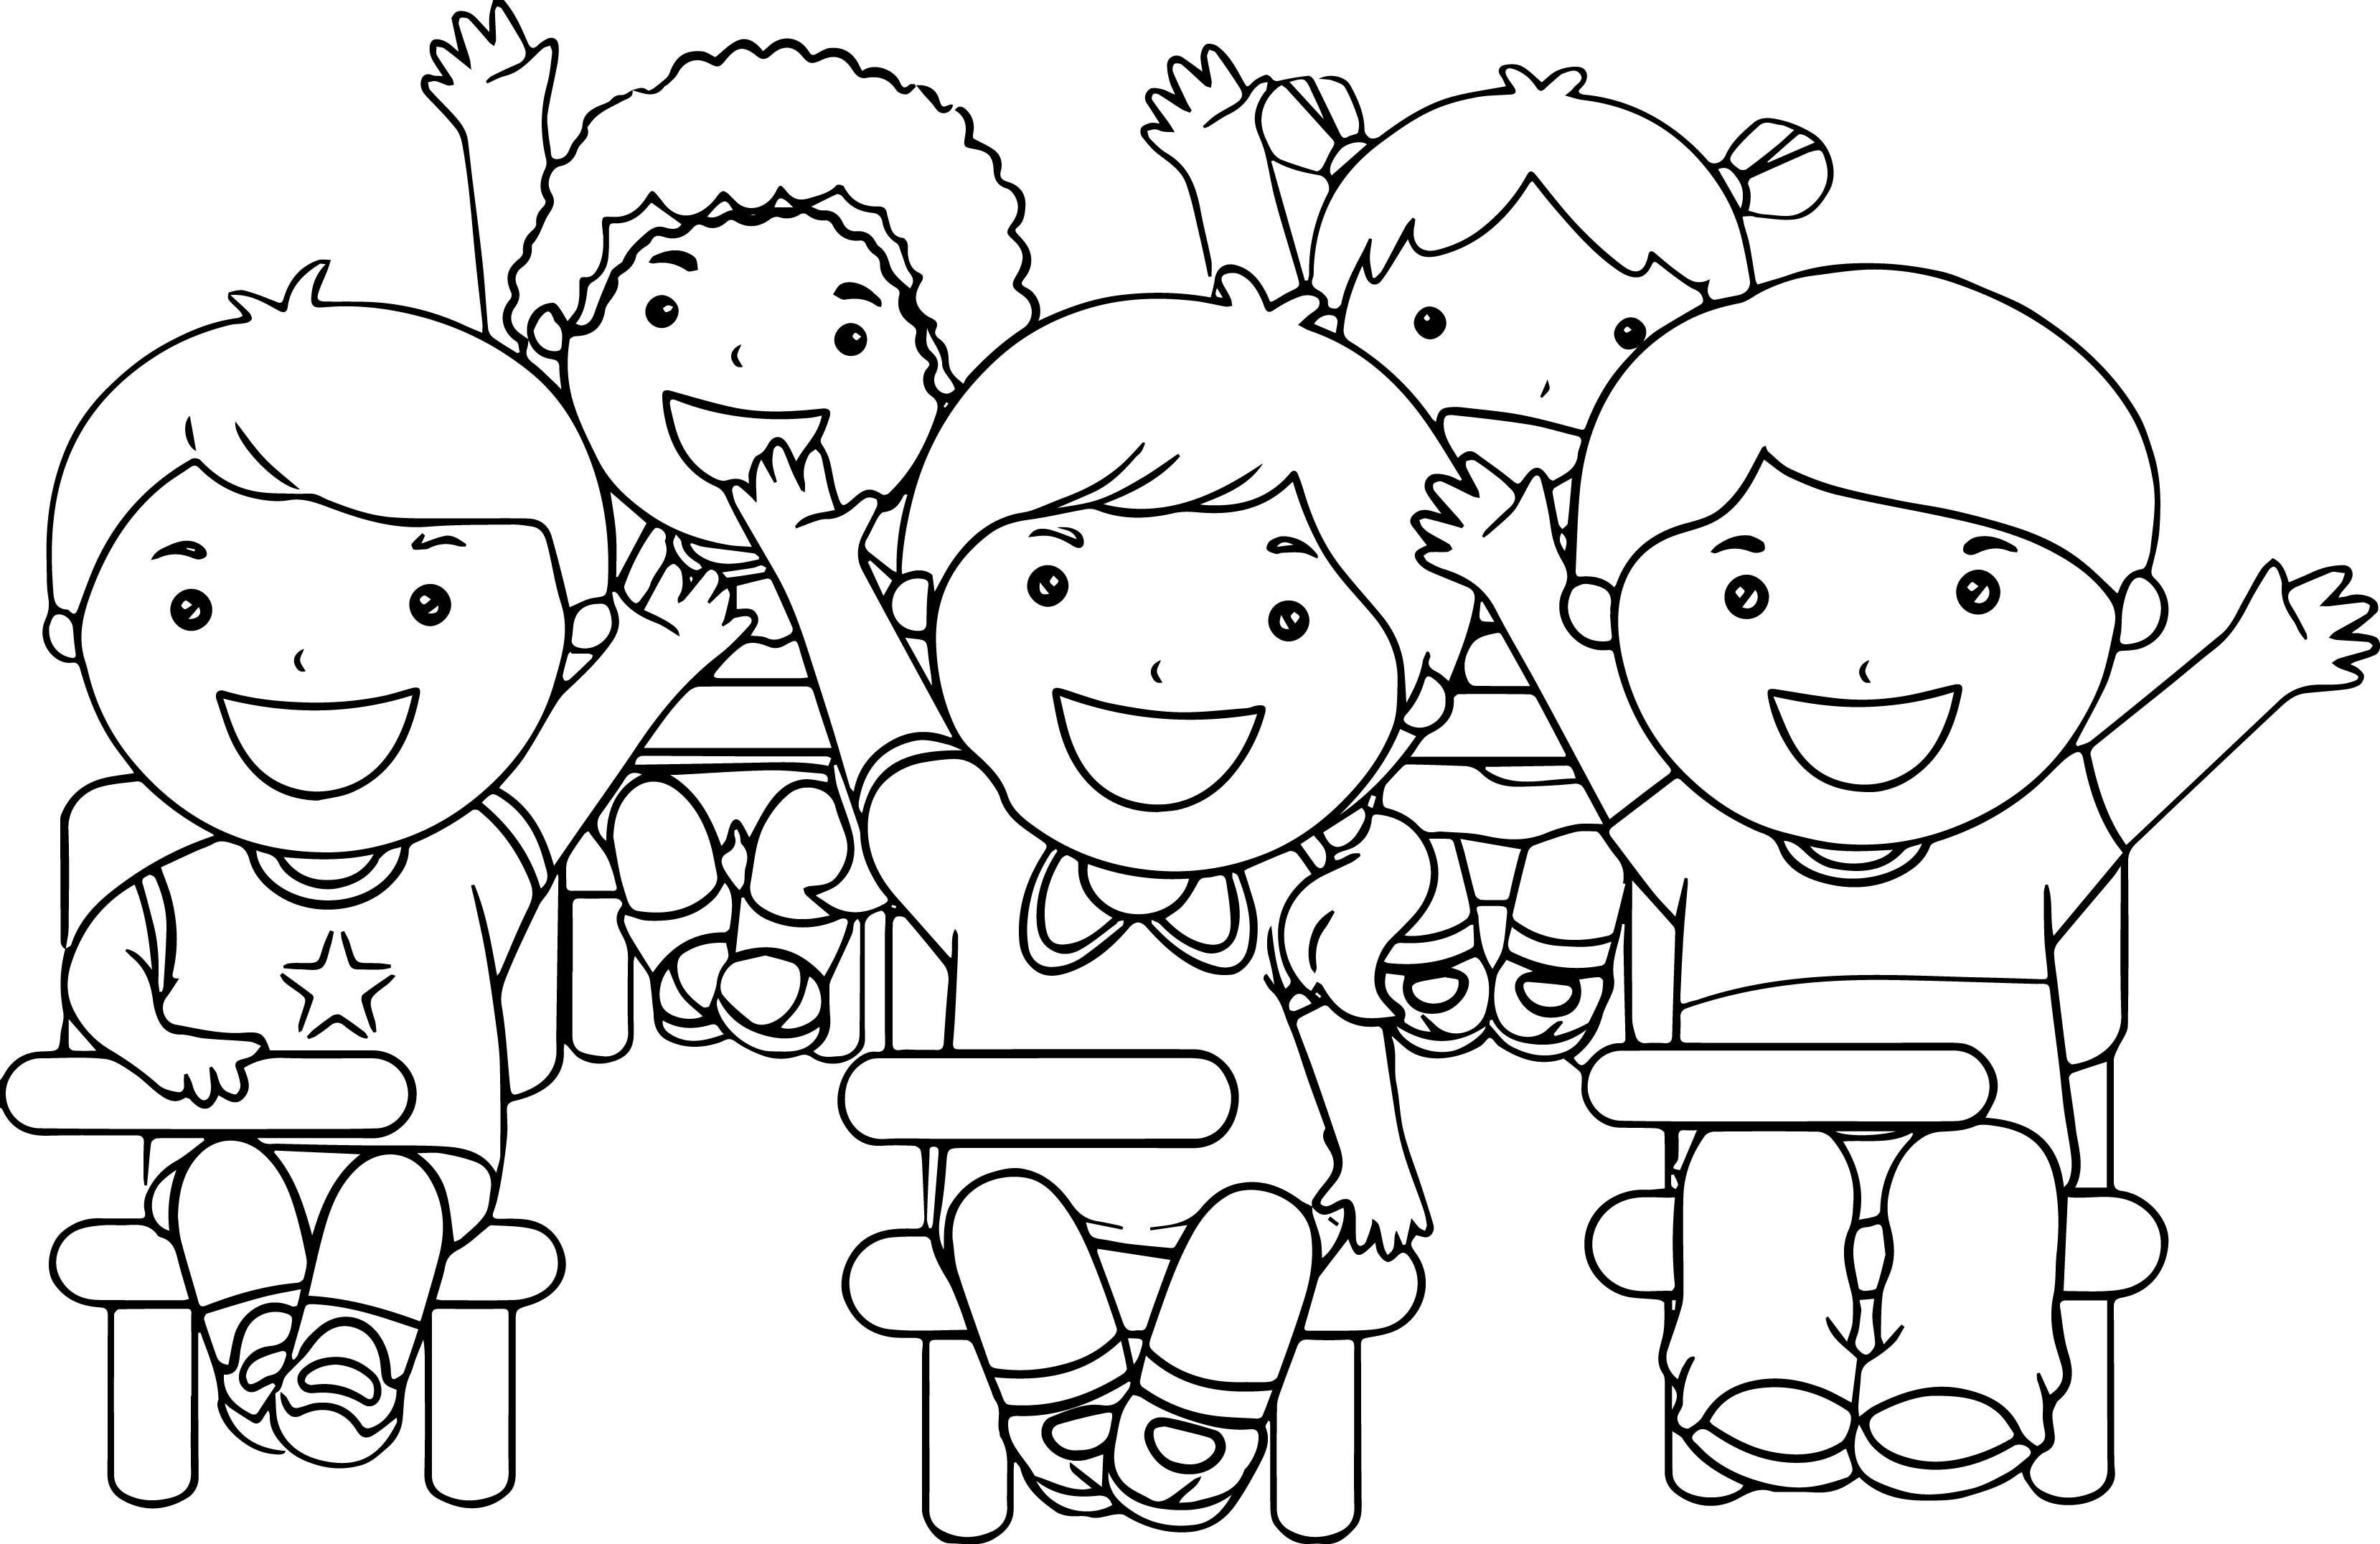 coloring school for kids school kid drawing at getdrawings free download coloring for school kids